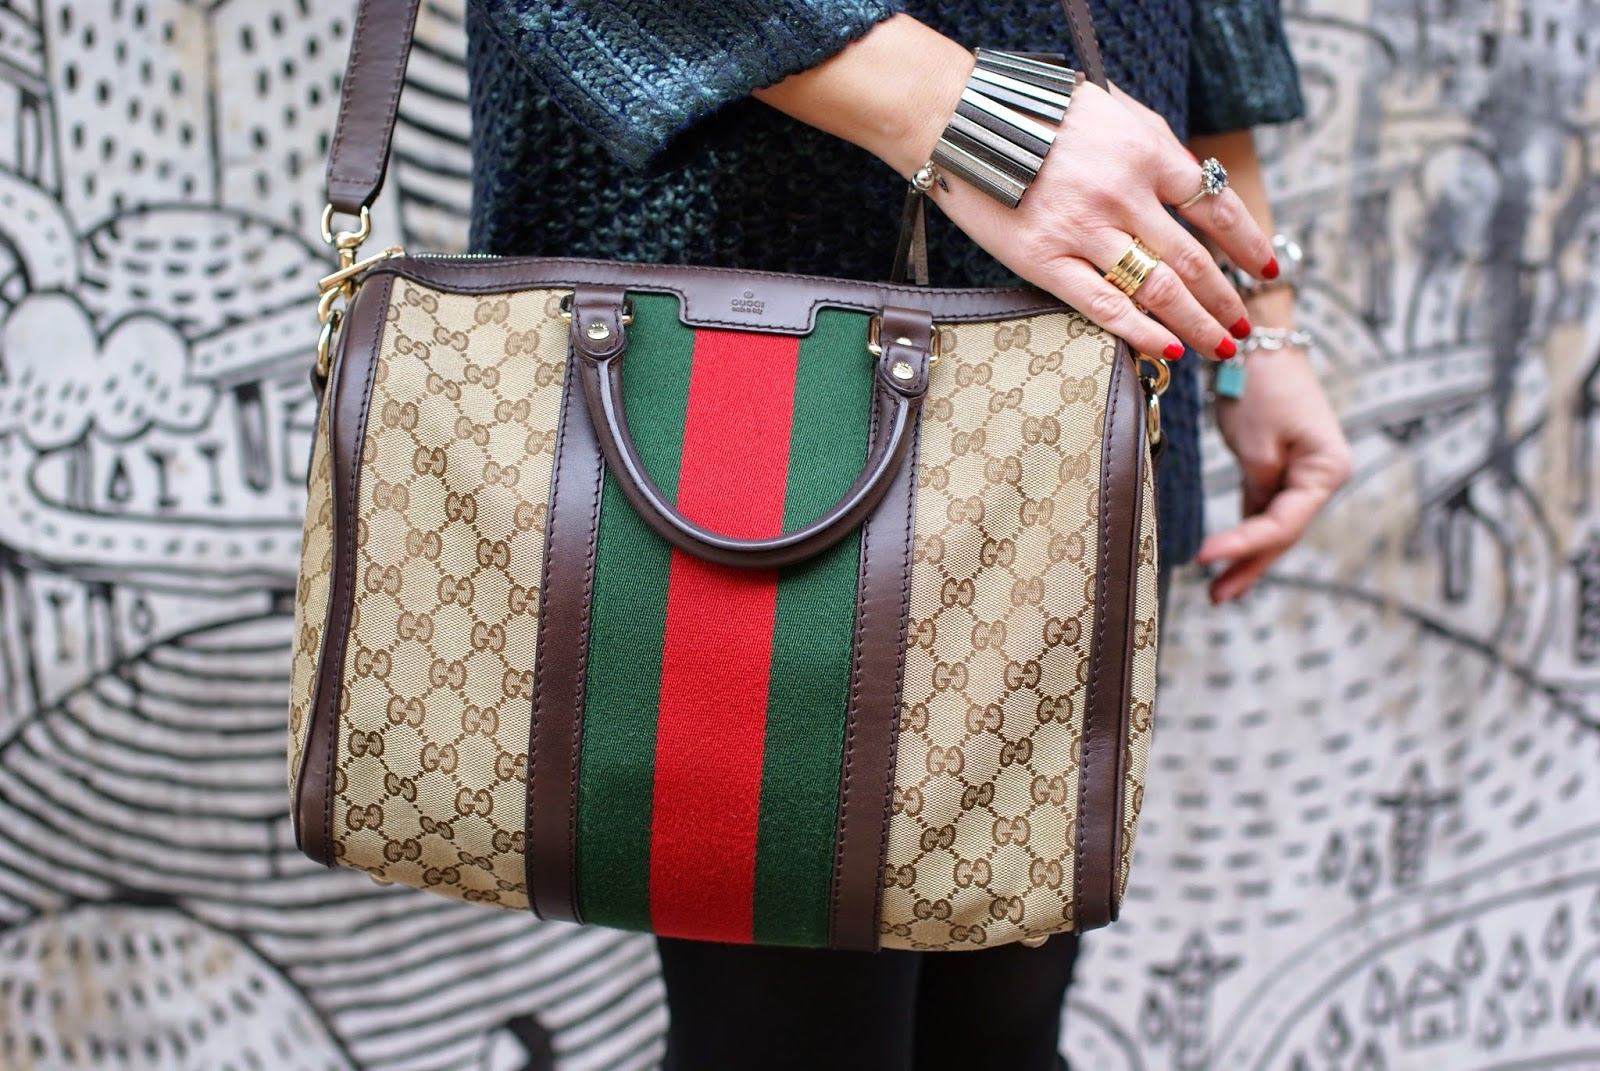 Gucci boston bag, Vitti Ferria Contin bracelet, Fashion and Cookies, fashion blogger